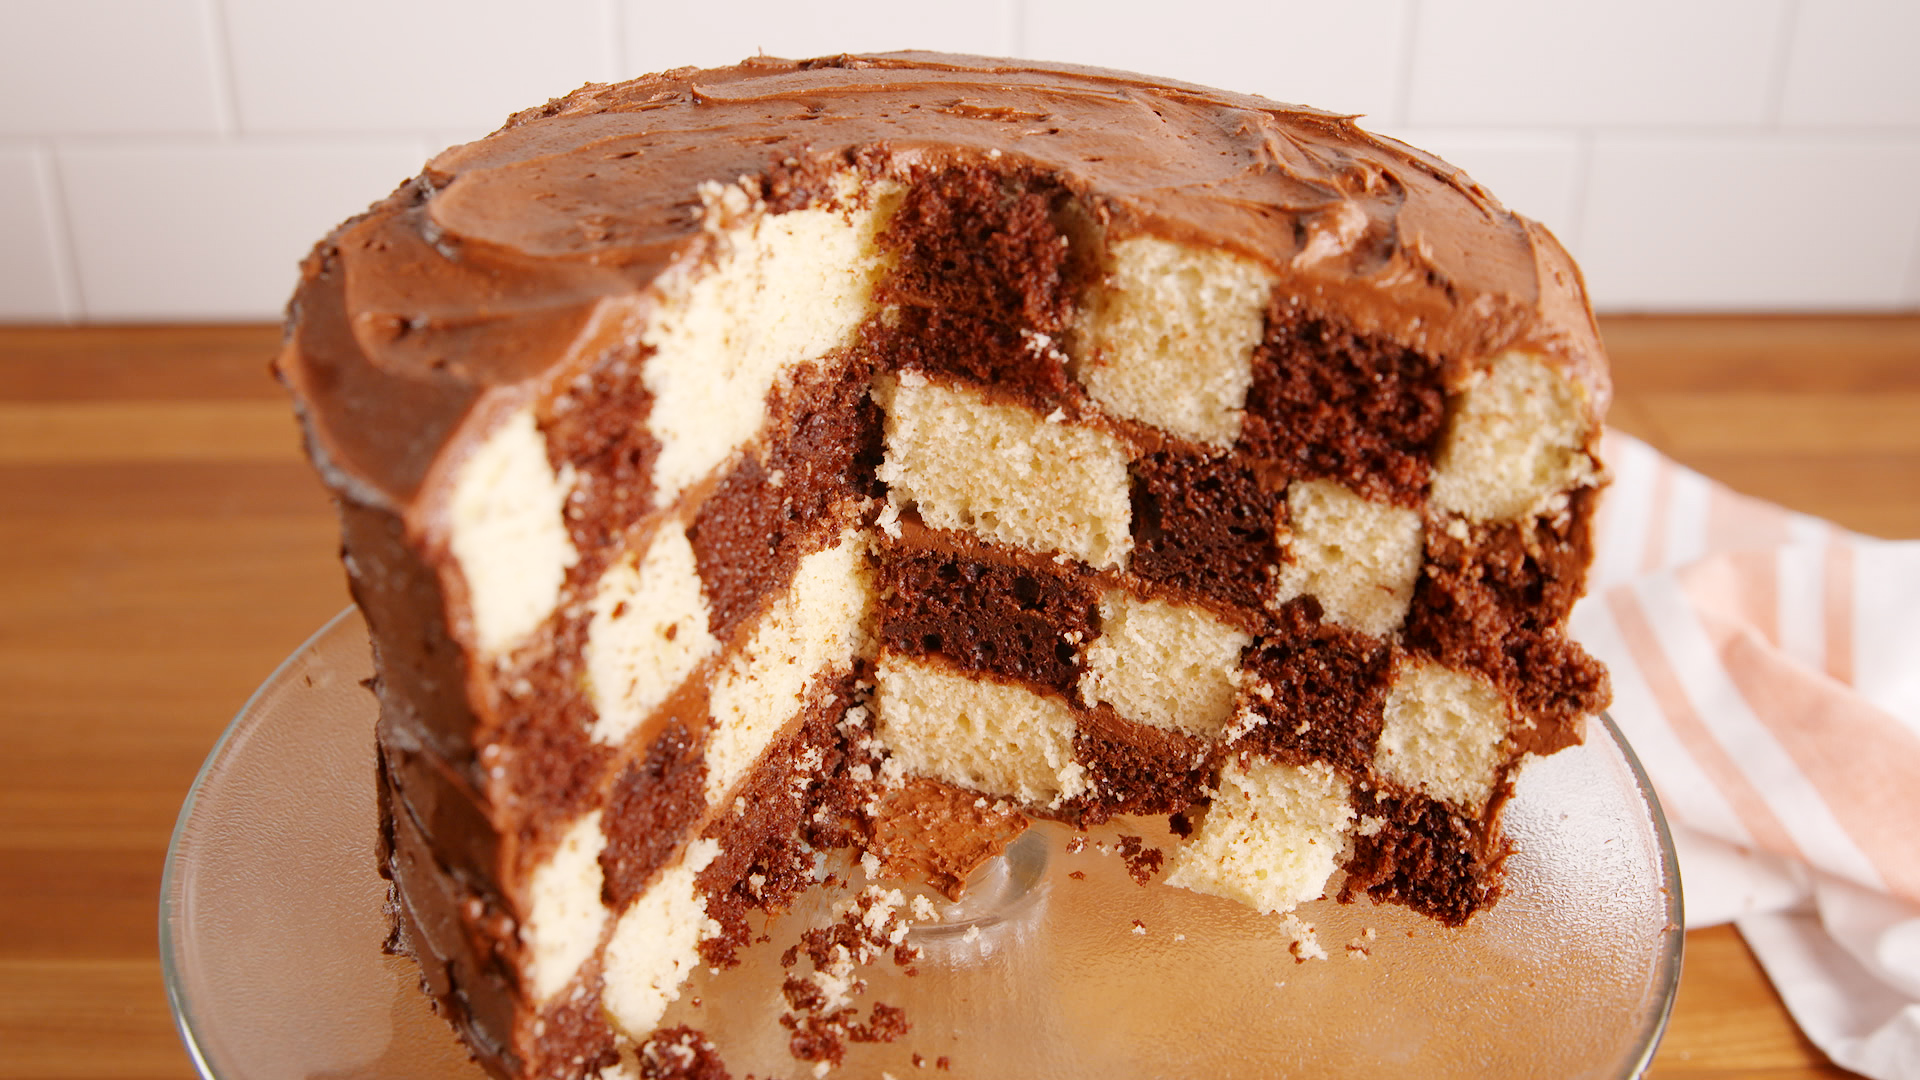 Cake Recipes In Pictures: 20+ Easy Surprise Inside Dessert Recipes—Delish.com